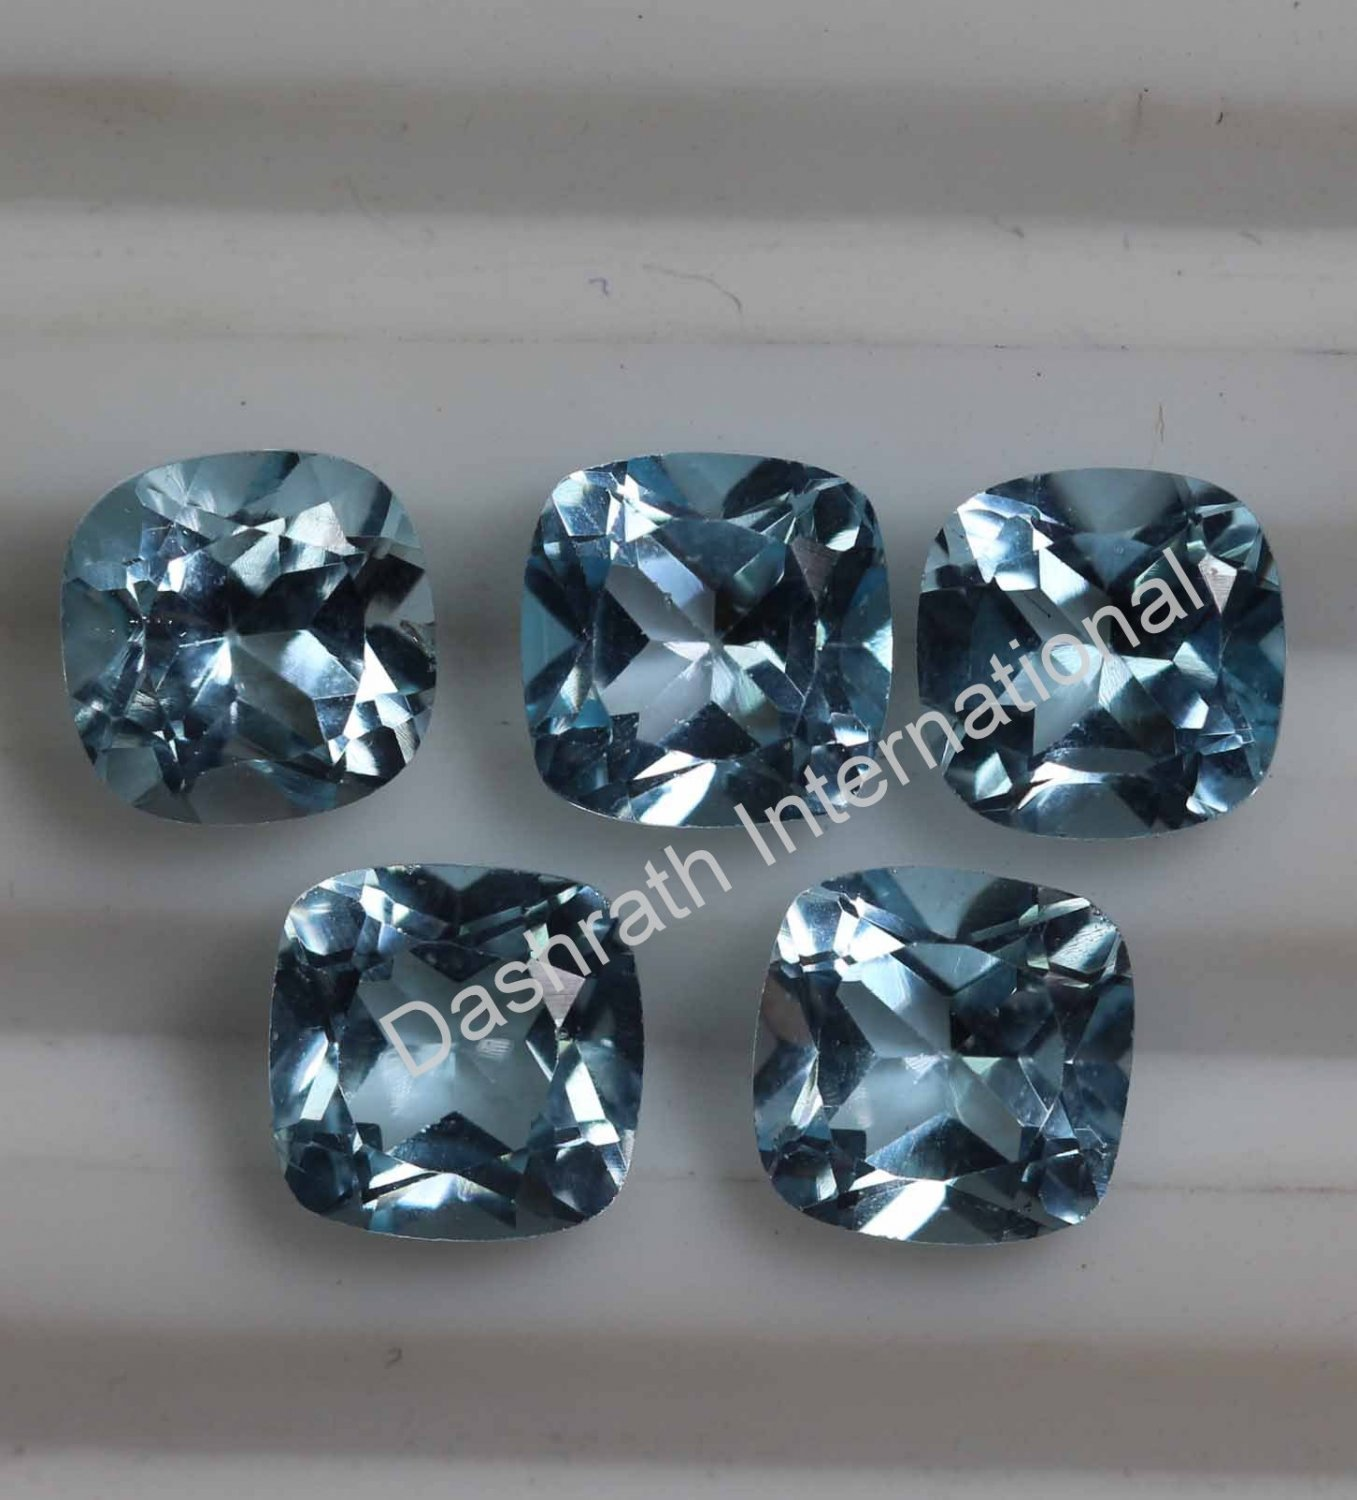 4mm Natural Sky Blue Topaz Faceted Cut Cushion 100 Pieces Lot Top Quality Loose Gemstone